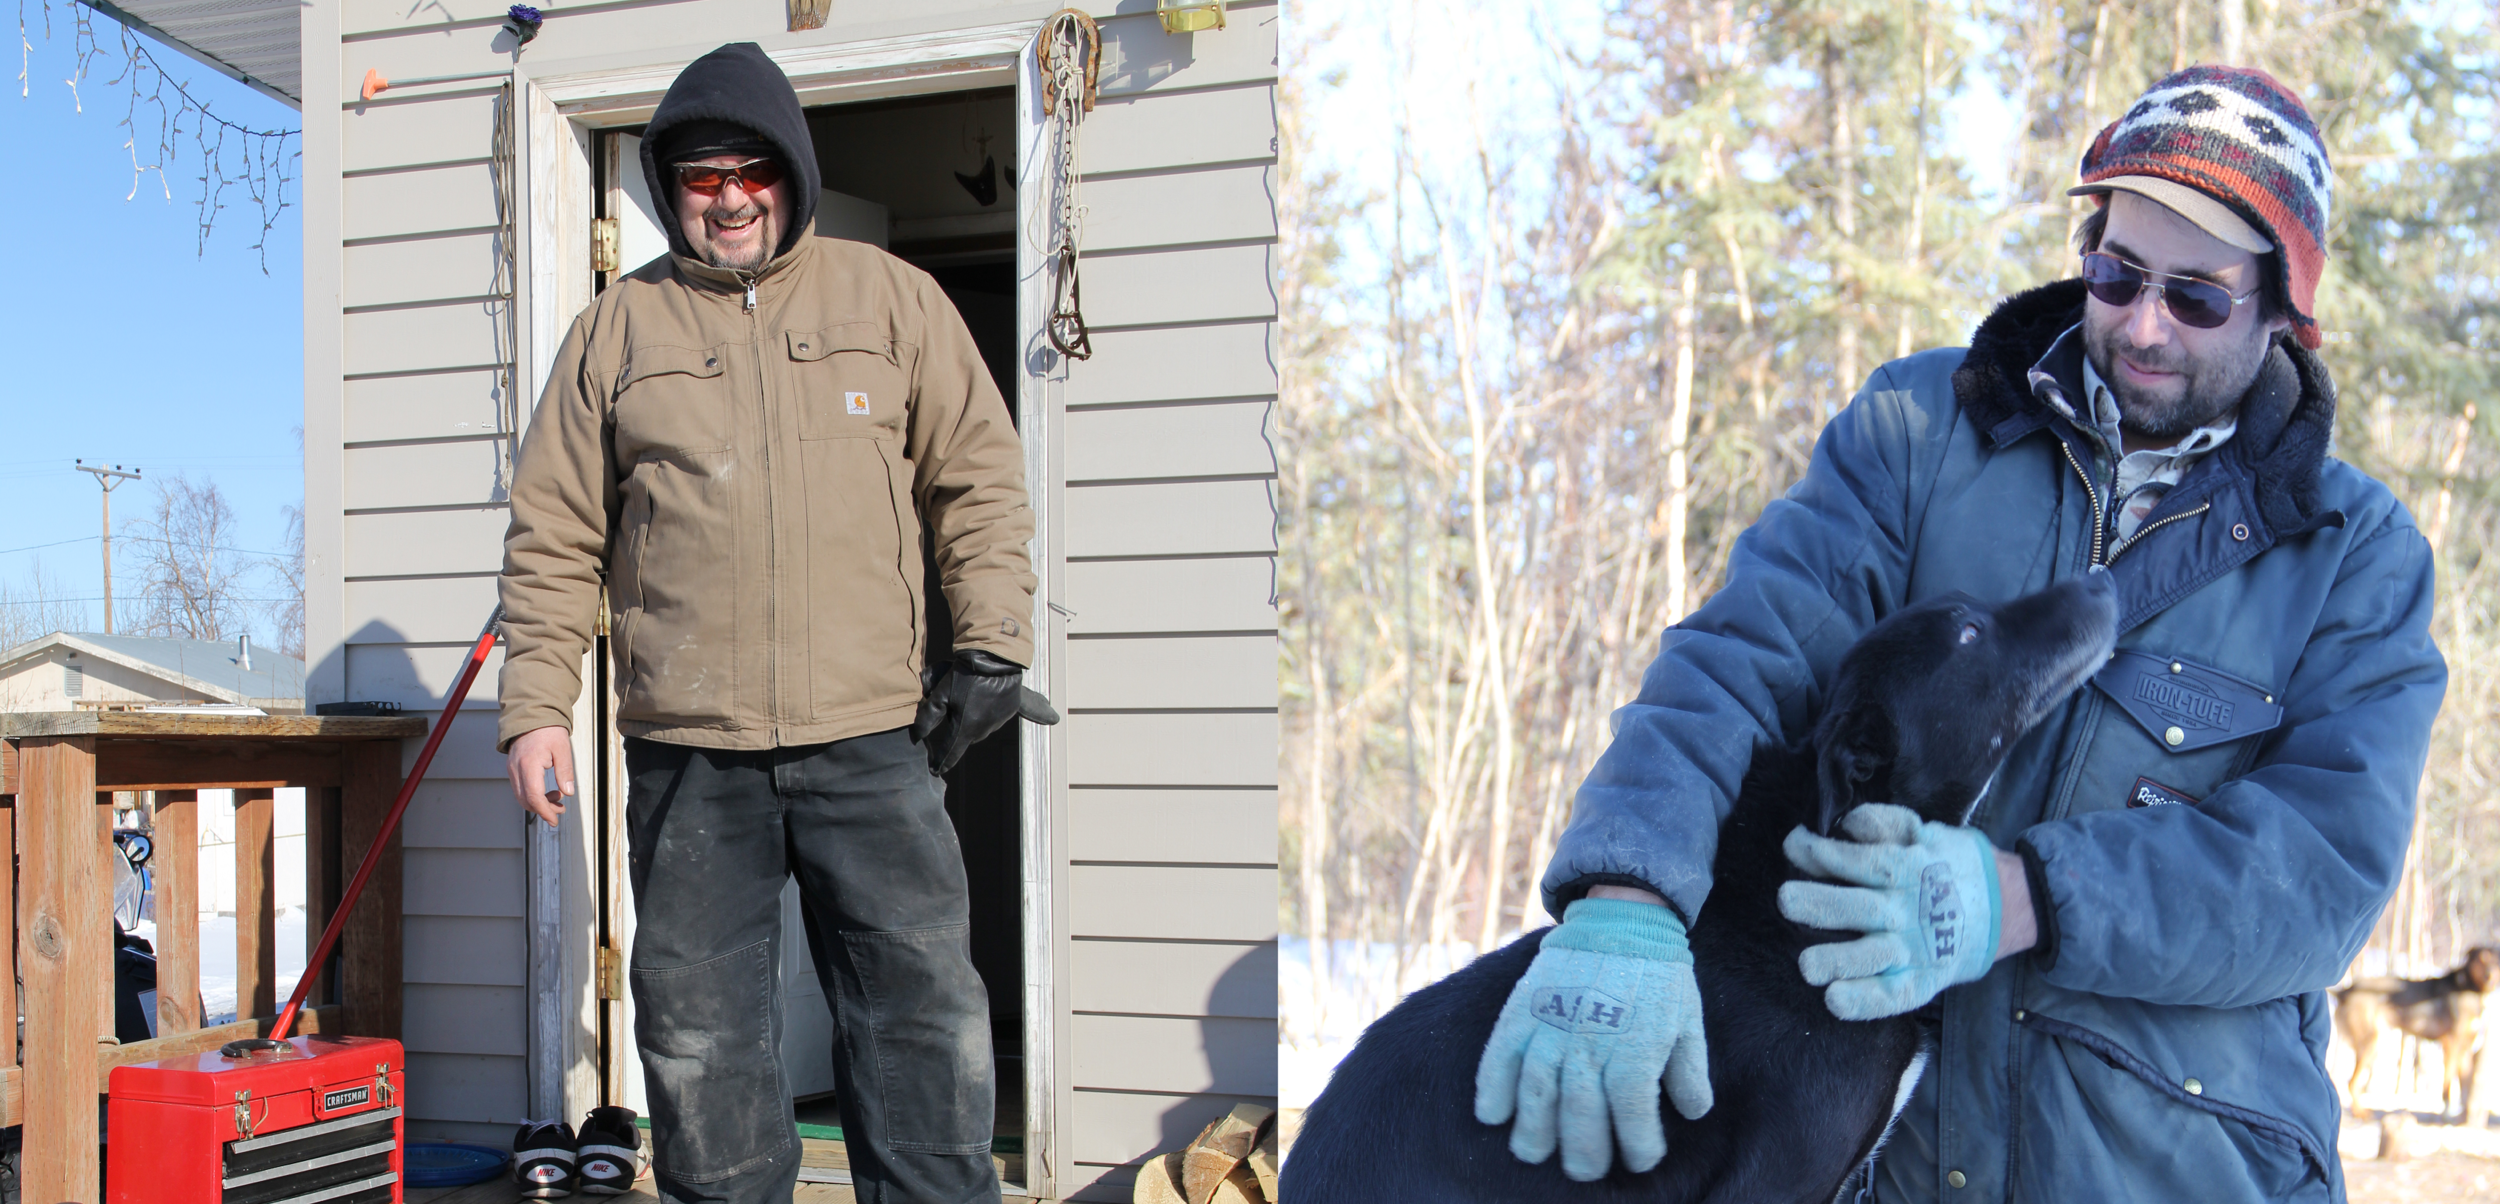 Left: Charlie Write on his front porch. Right: James Roberts with one of his dogs.